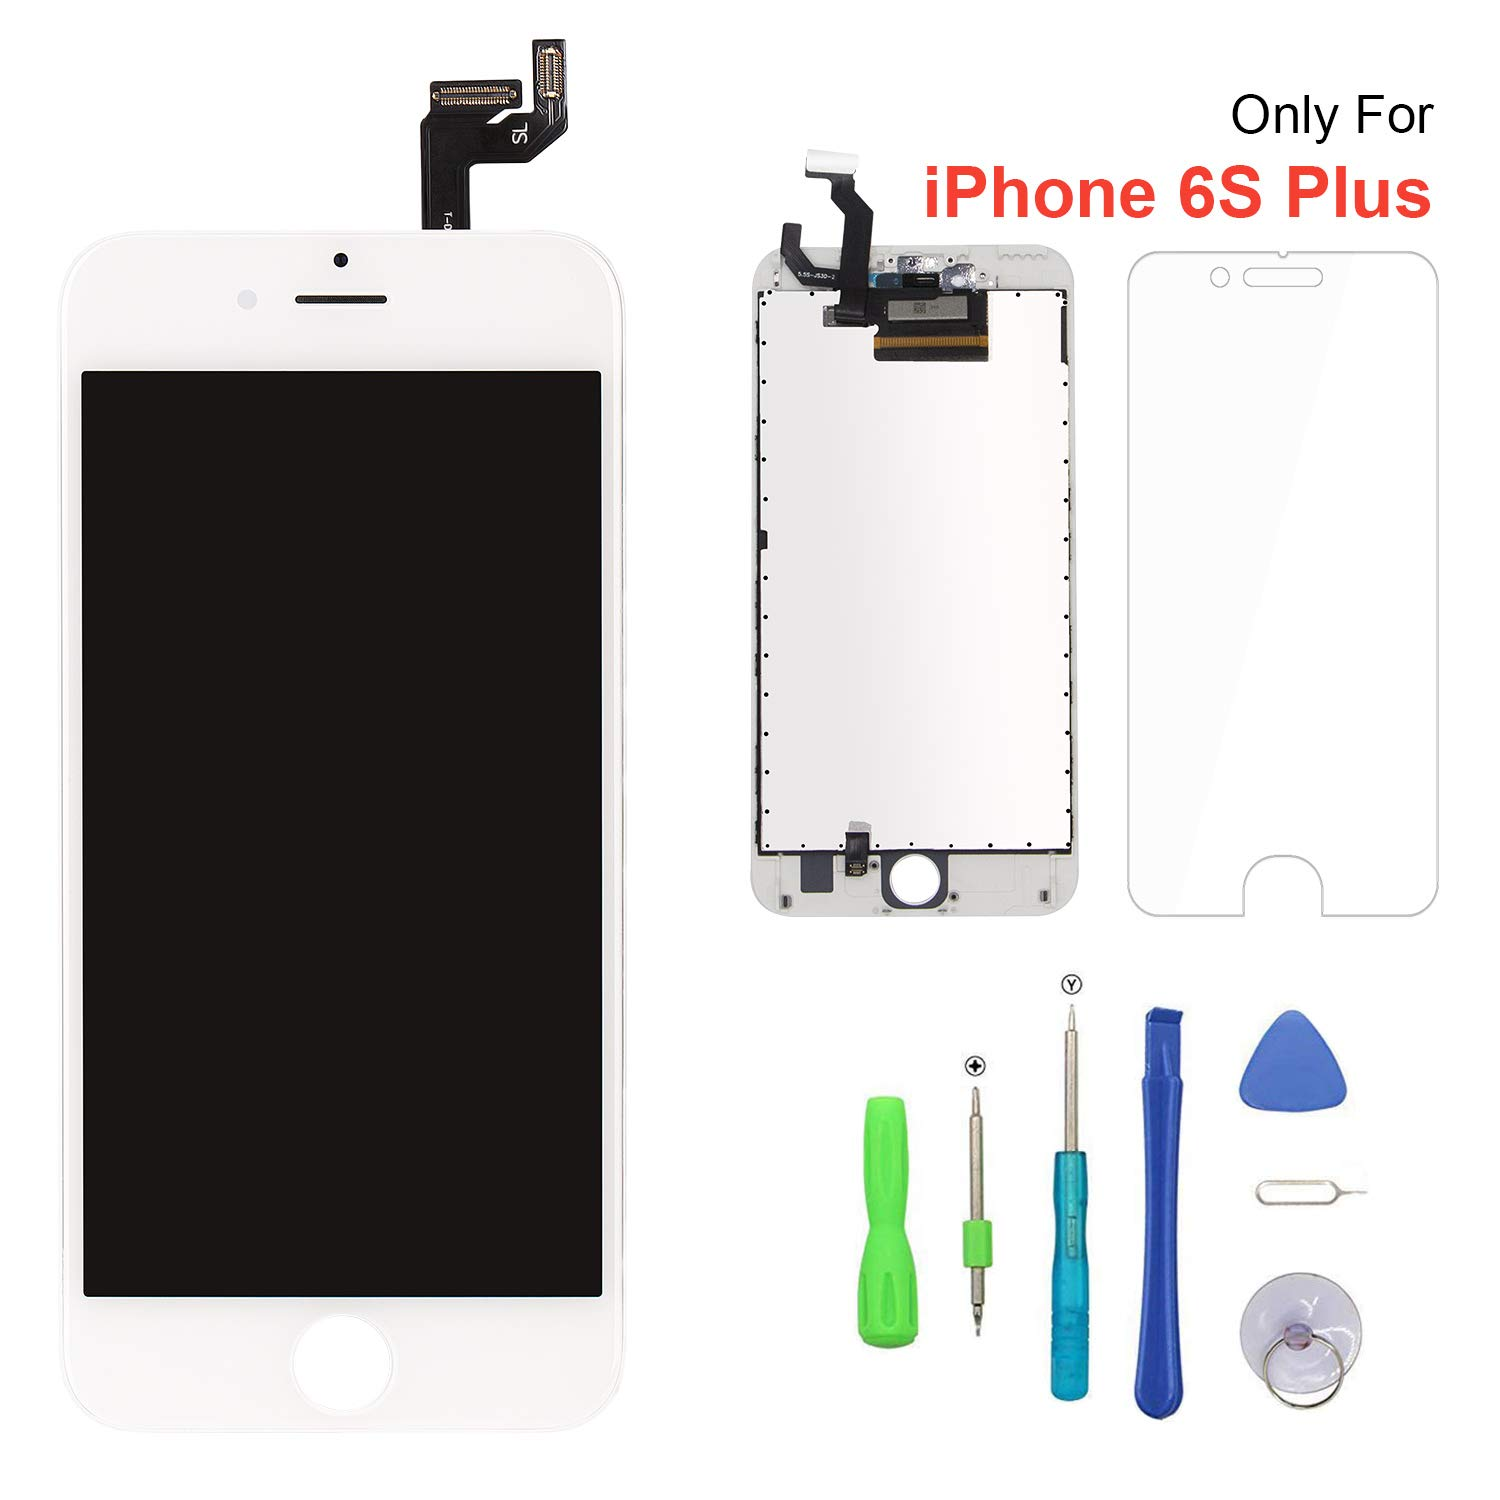 huge discount 084f3 dff2e Screen Replacement for iPhone 6s Plus White 3D Touch Screen LCD Digitizer  Replacement Frame Display Assembly Set with Repair Tool Kits(6s Plus, White)